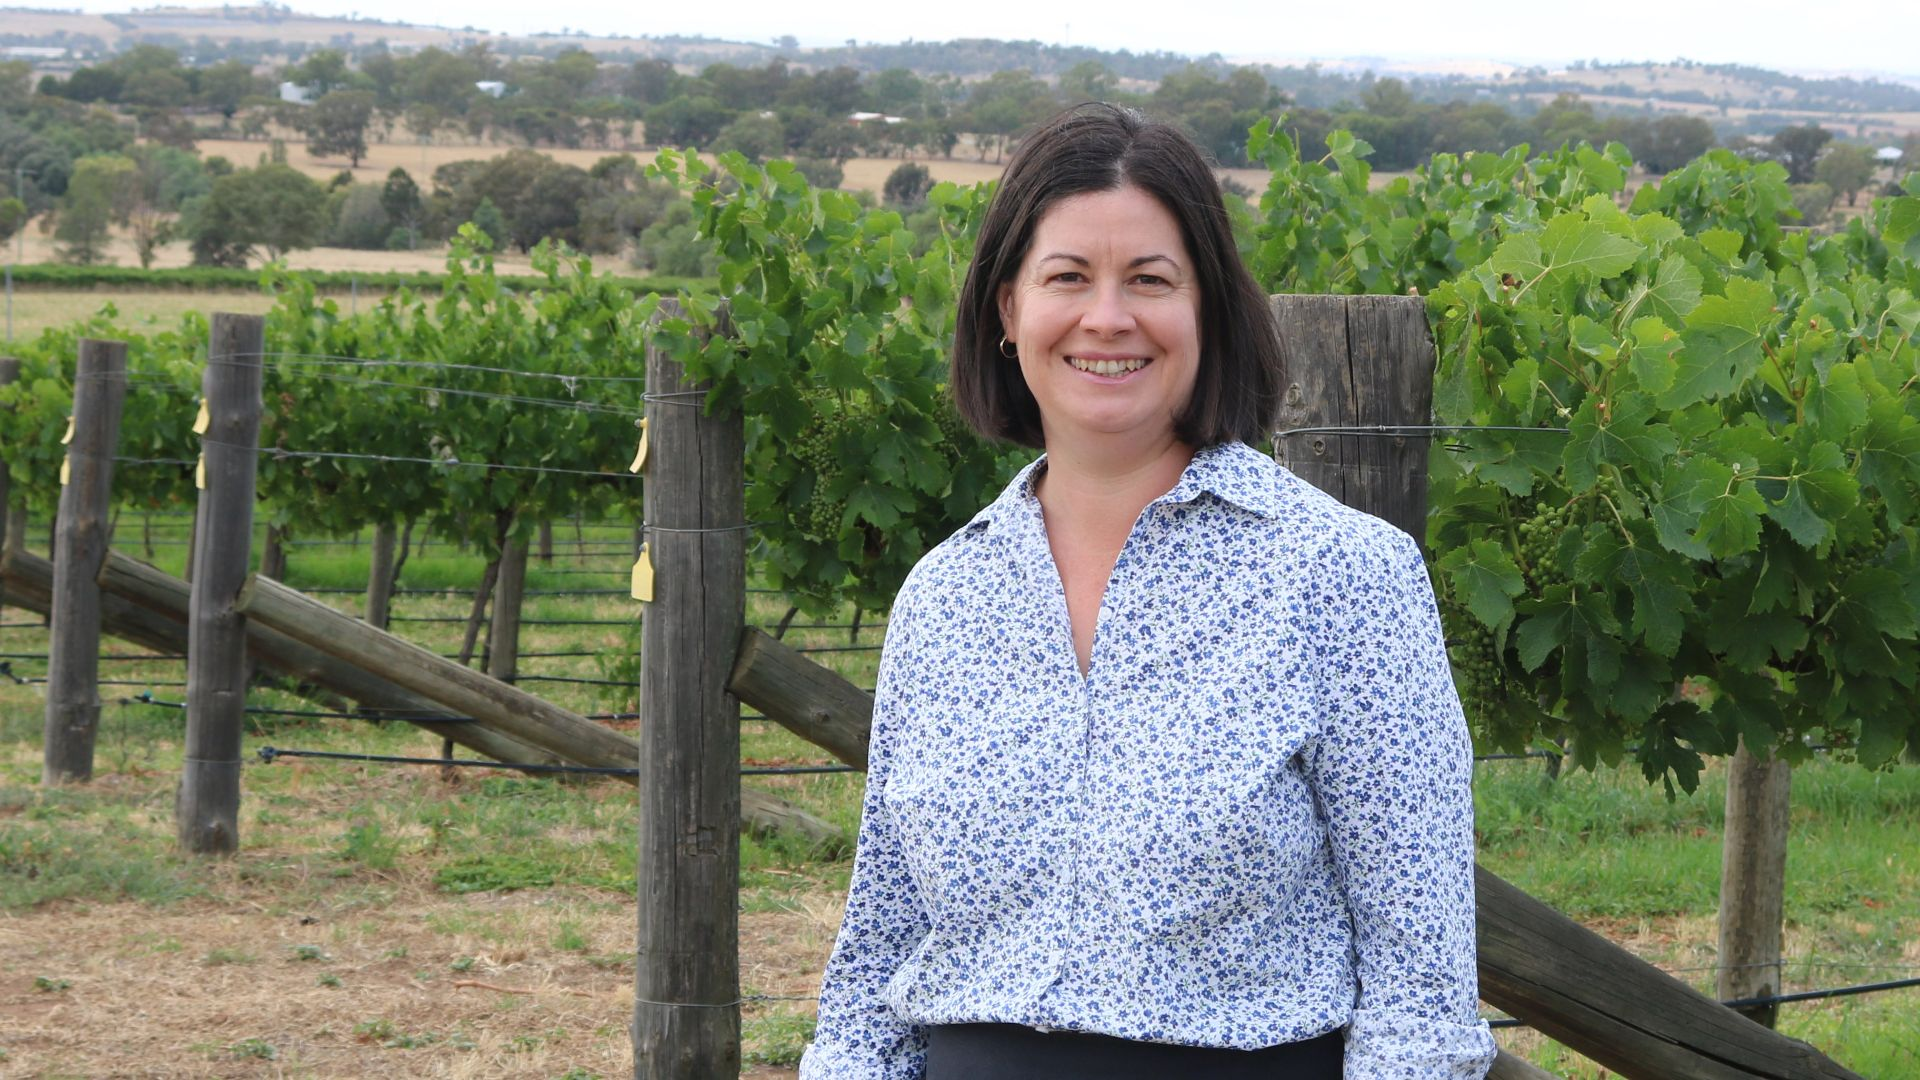 Bolstering Australia's sustainable viticultural practices